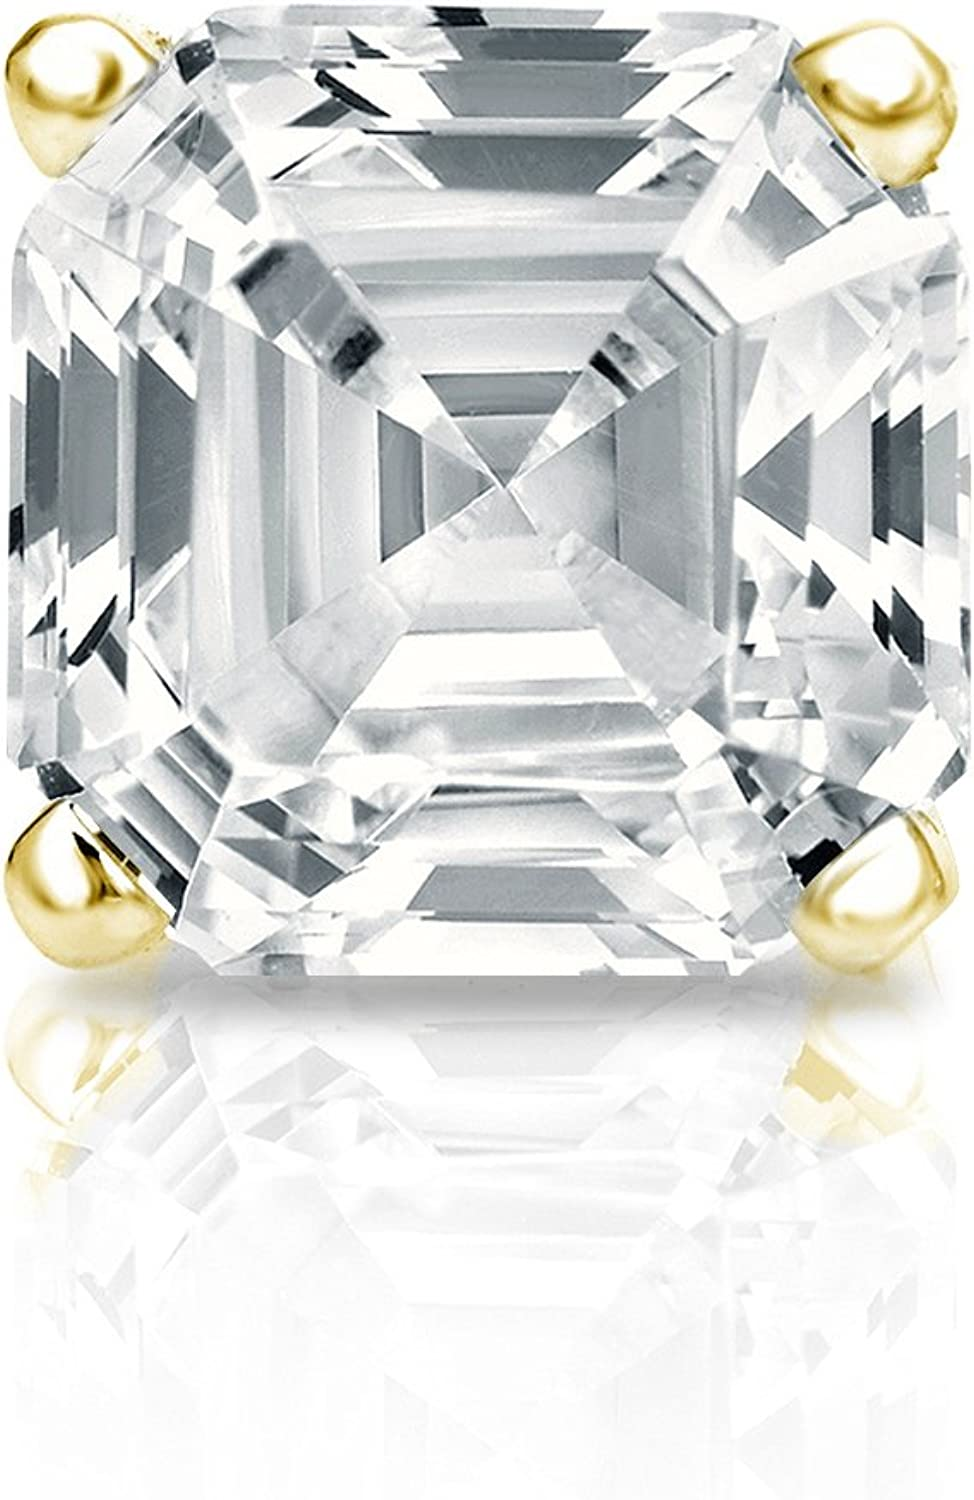 14k Gold 4-Prong Basket Asscher Recommendation New Shipping Free Shipping Diamond Earring STUD 4 1 SINGLE